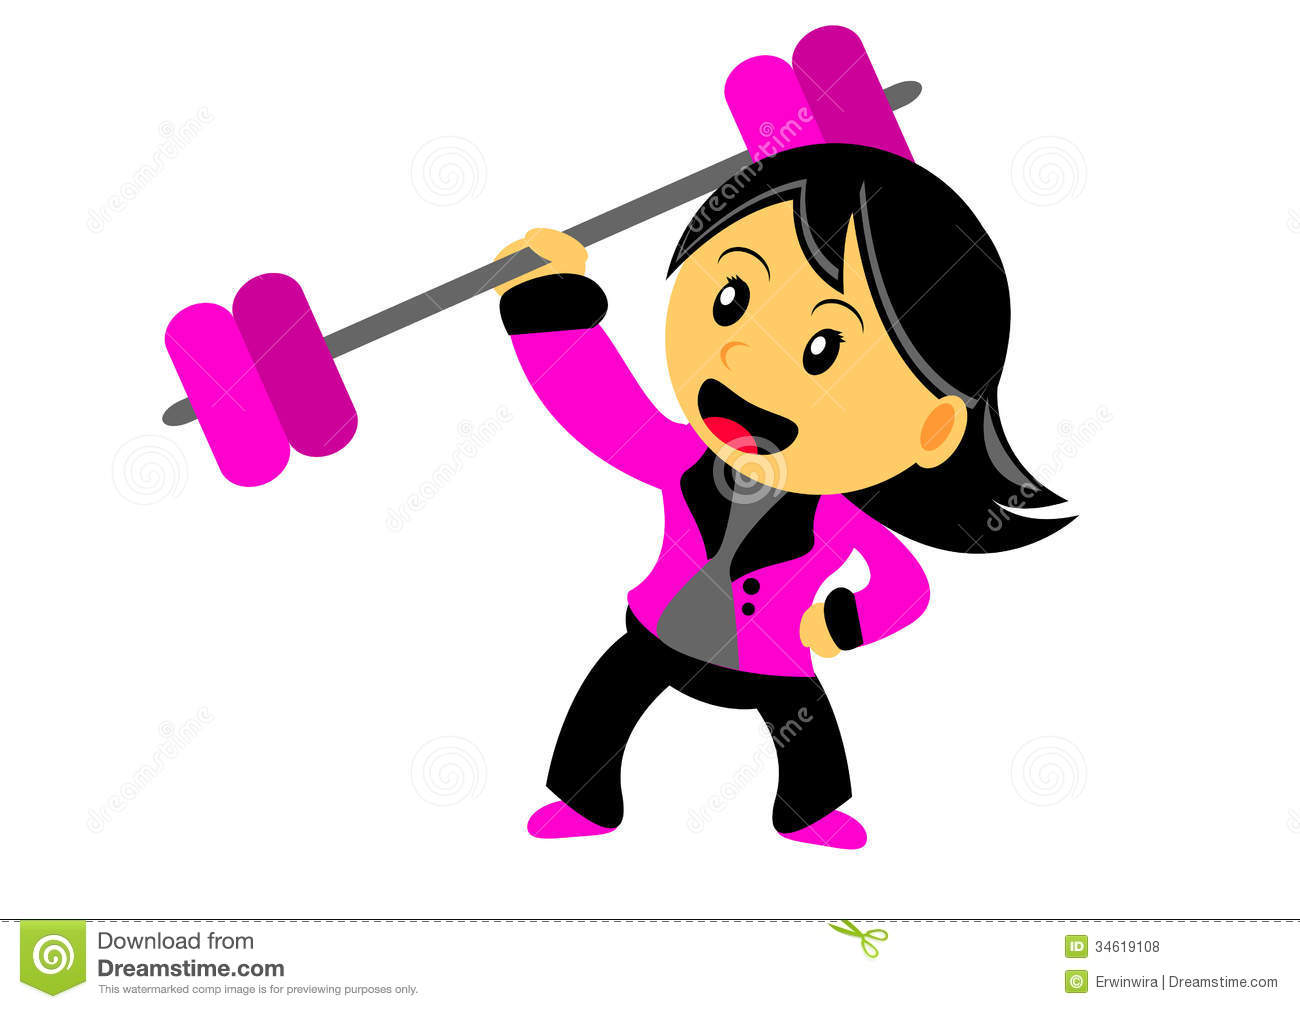 Illustration of Chibi Woman Cartoon Character in Activity Strong Woman Cartoon Characters